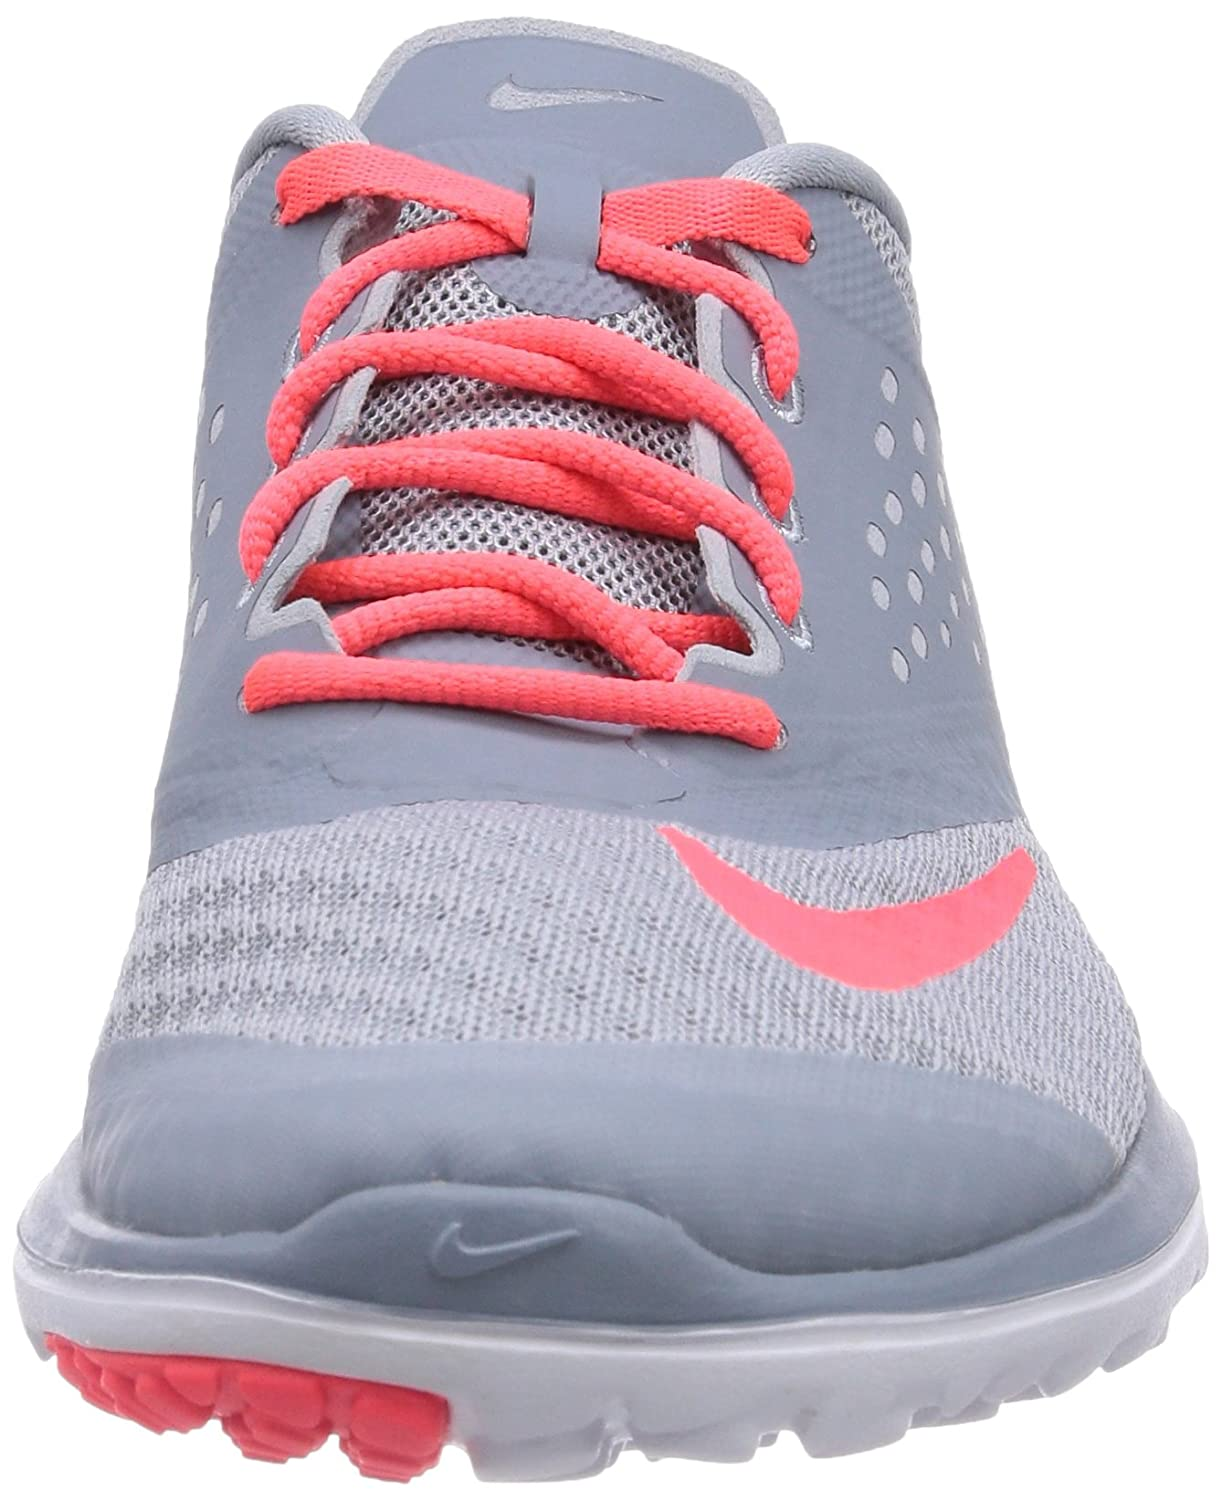 quality design 2d552 abc3a Amazon.com   NIKE Women s Fs Lite 2 Running Shoes   Road Running